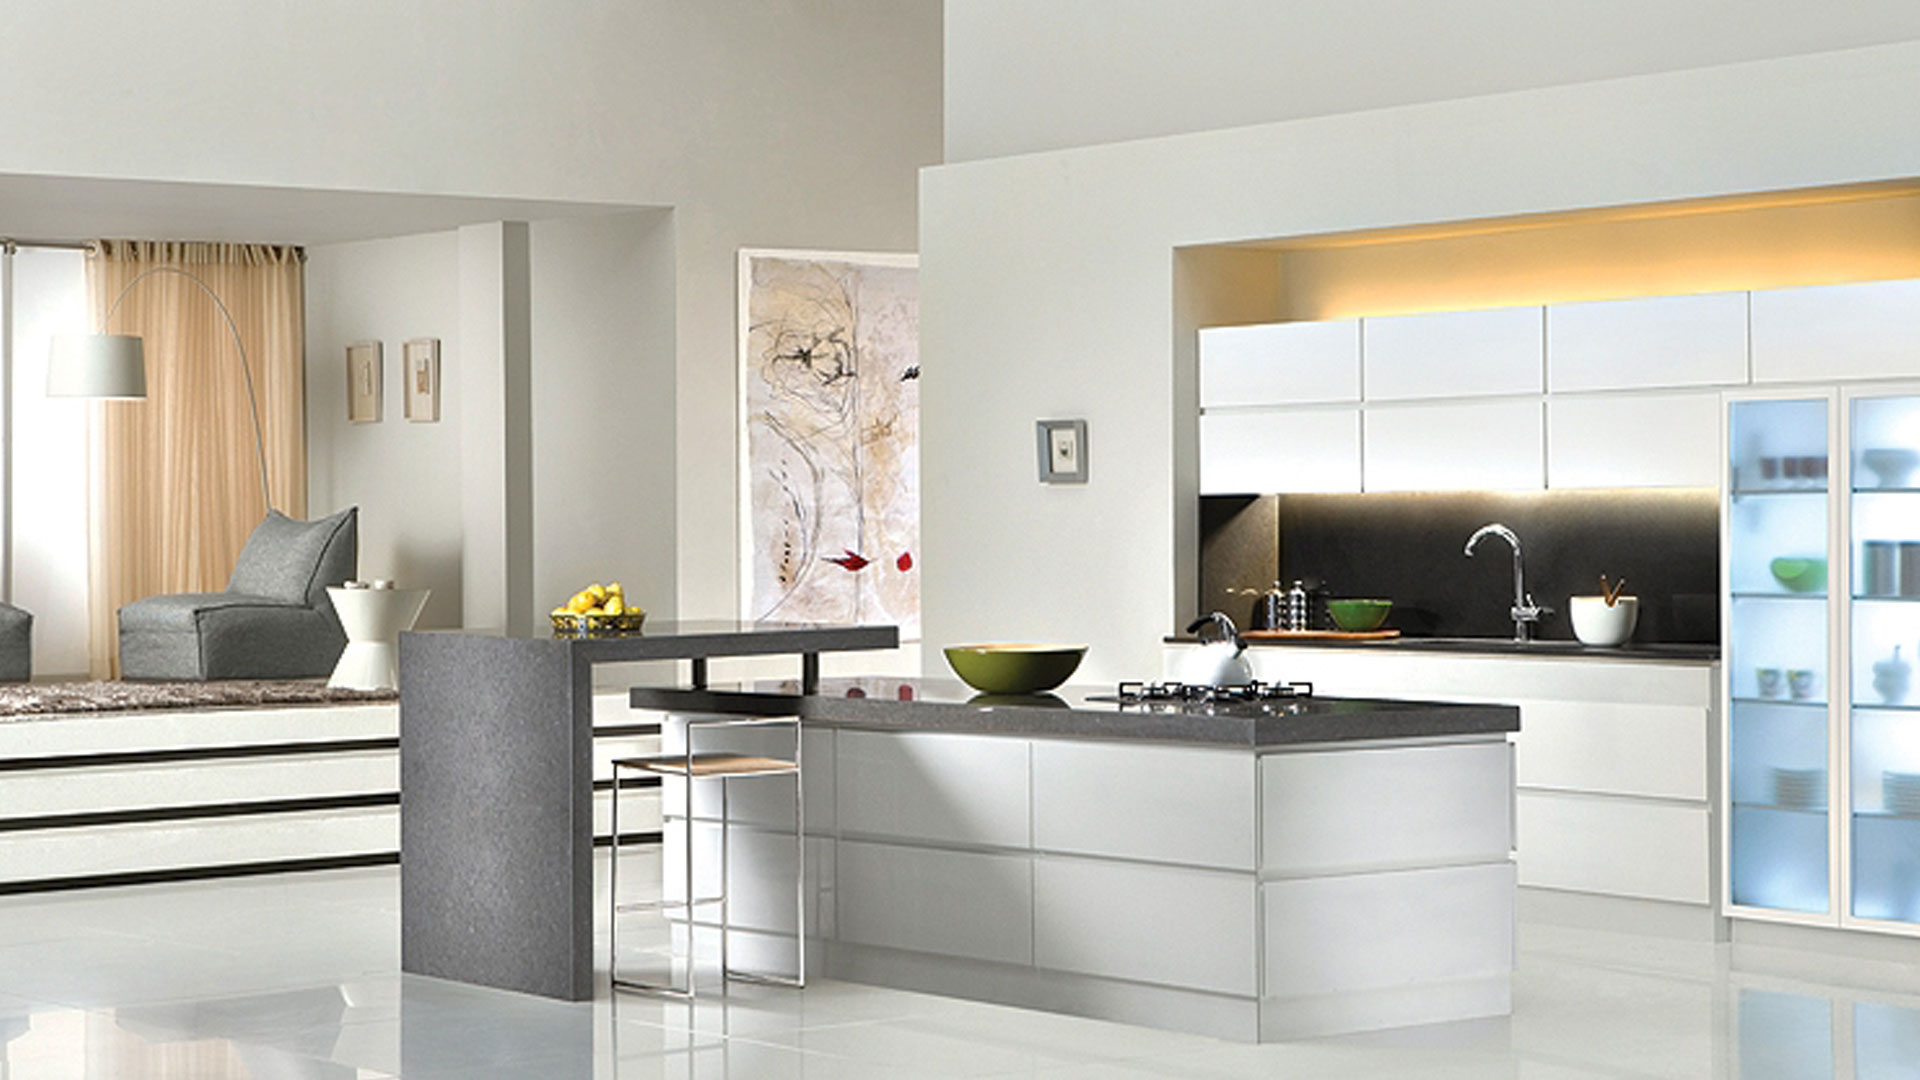 http://mydecorative.com/wp-content/uploads/2013/05/kitchen-design-concept-edition-2013.jpeg